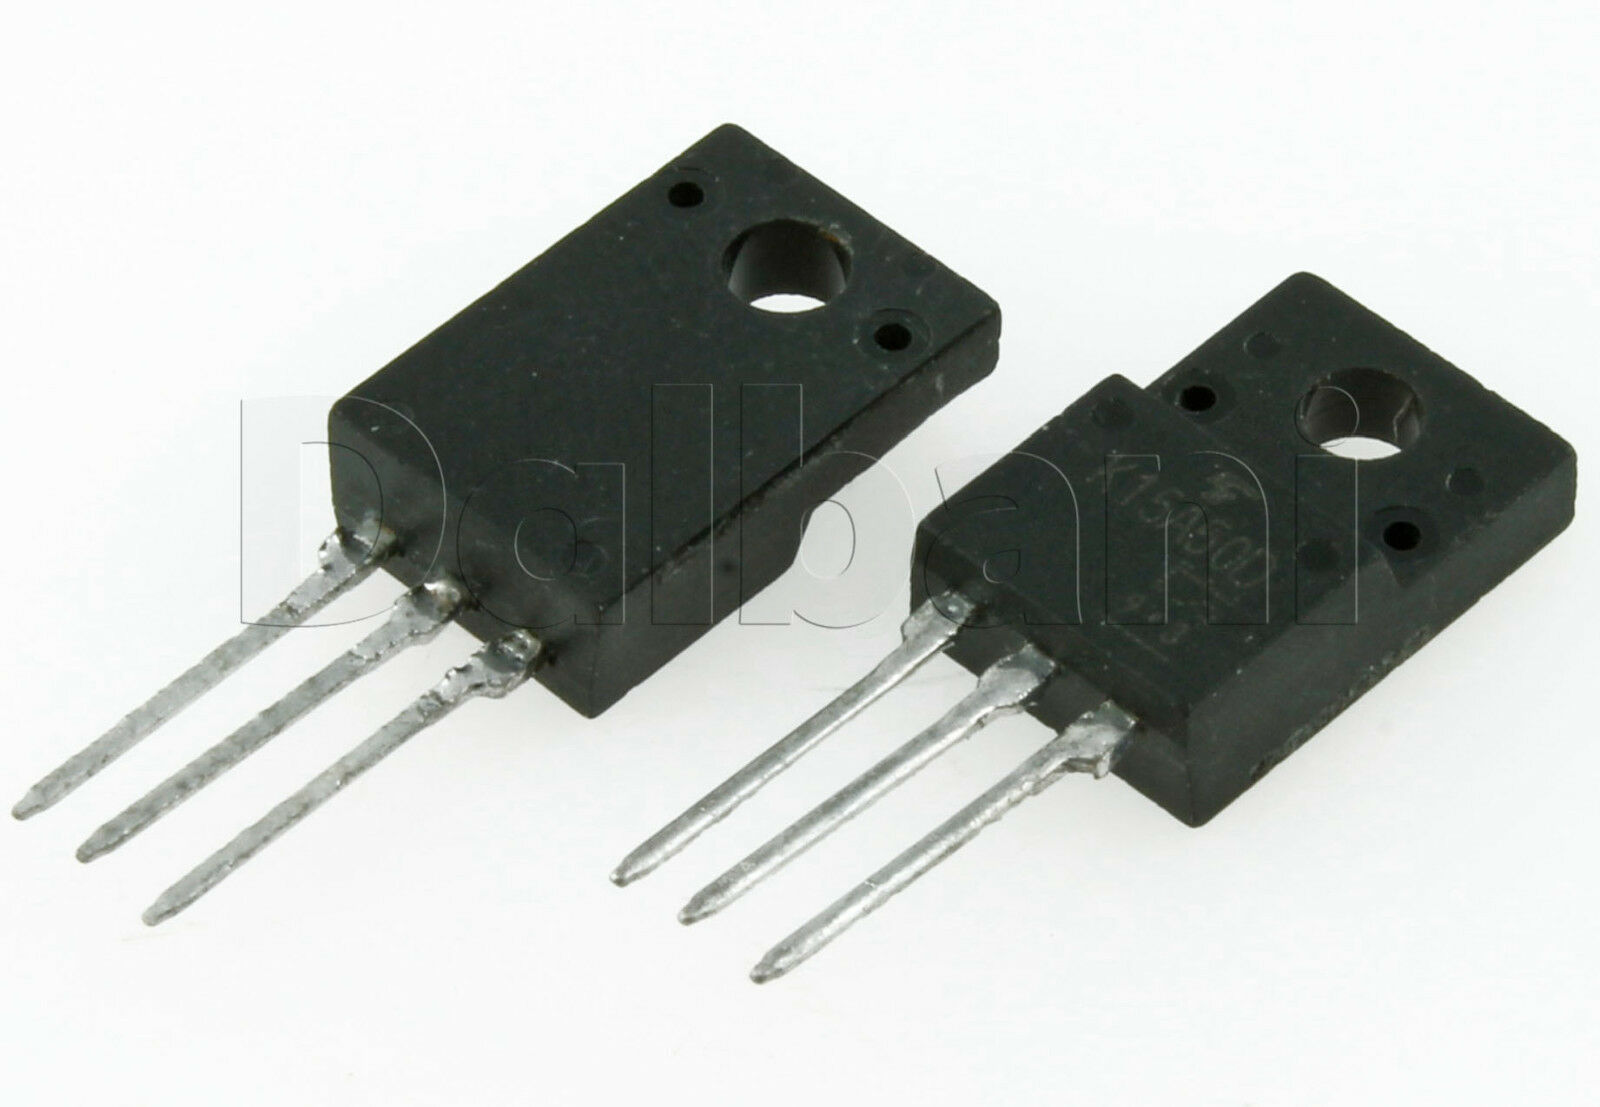 TK15A50D TO-220SIS Original New Toshiba 15A 500V .3ohm N-CHANNEL Si POWER MOSFET